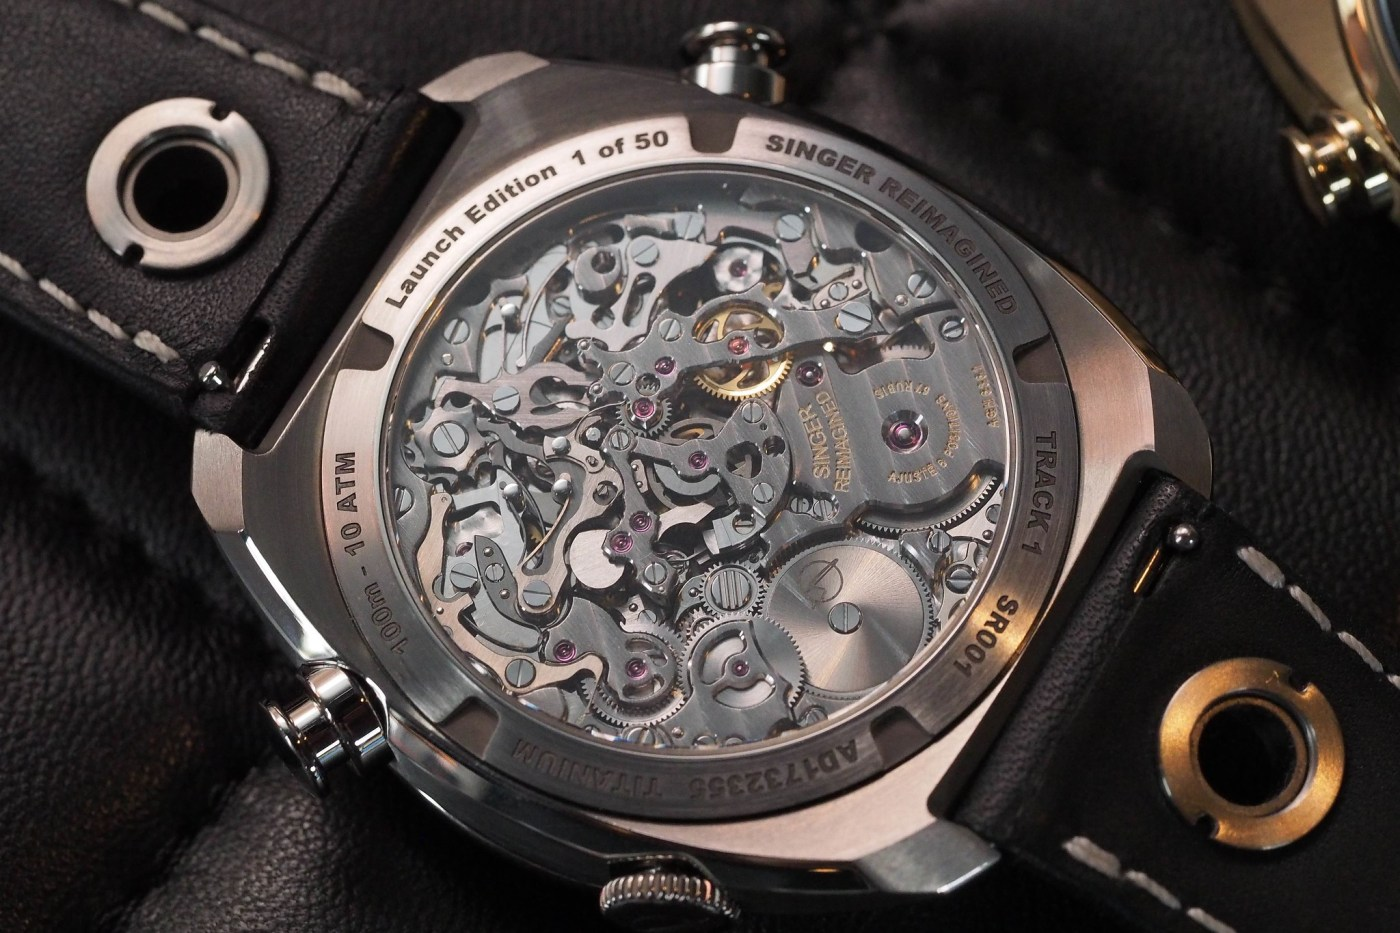 Singer Track 1 Launch and Geneva Editions caseback